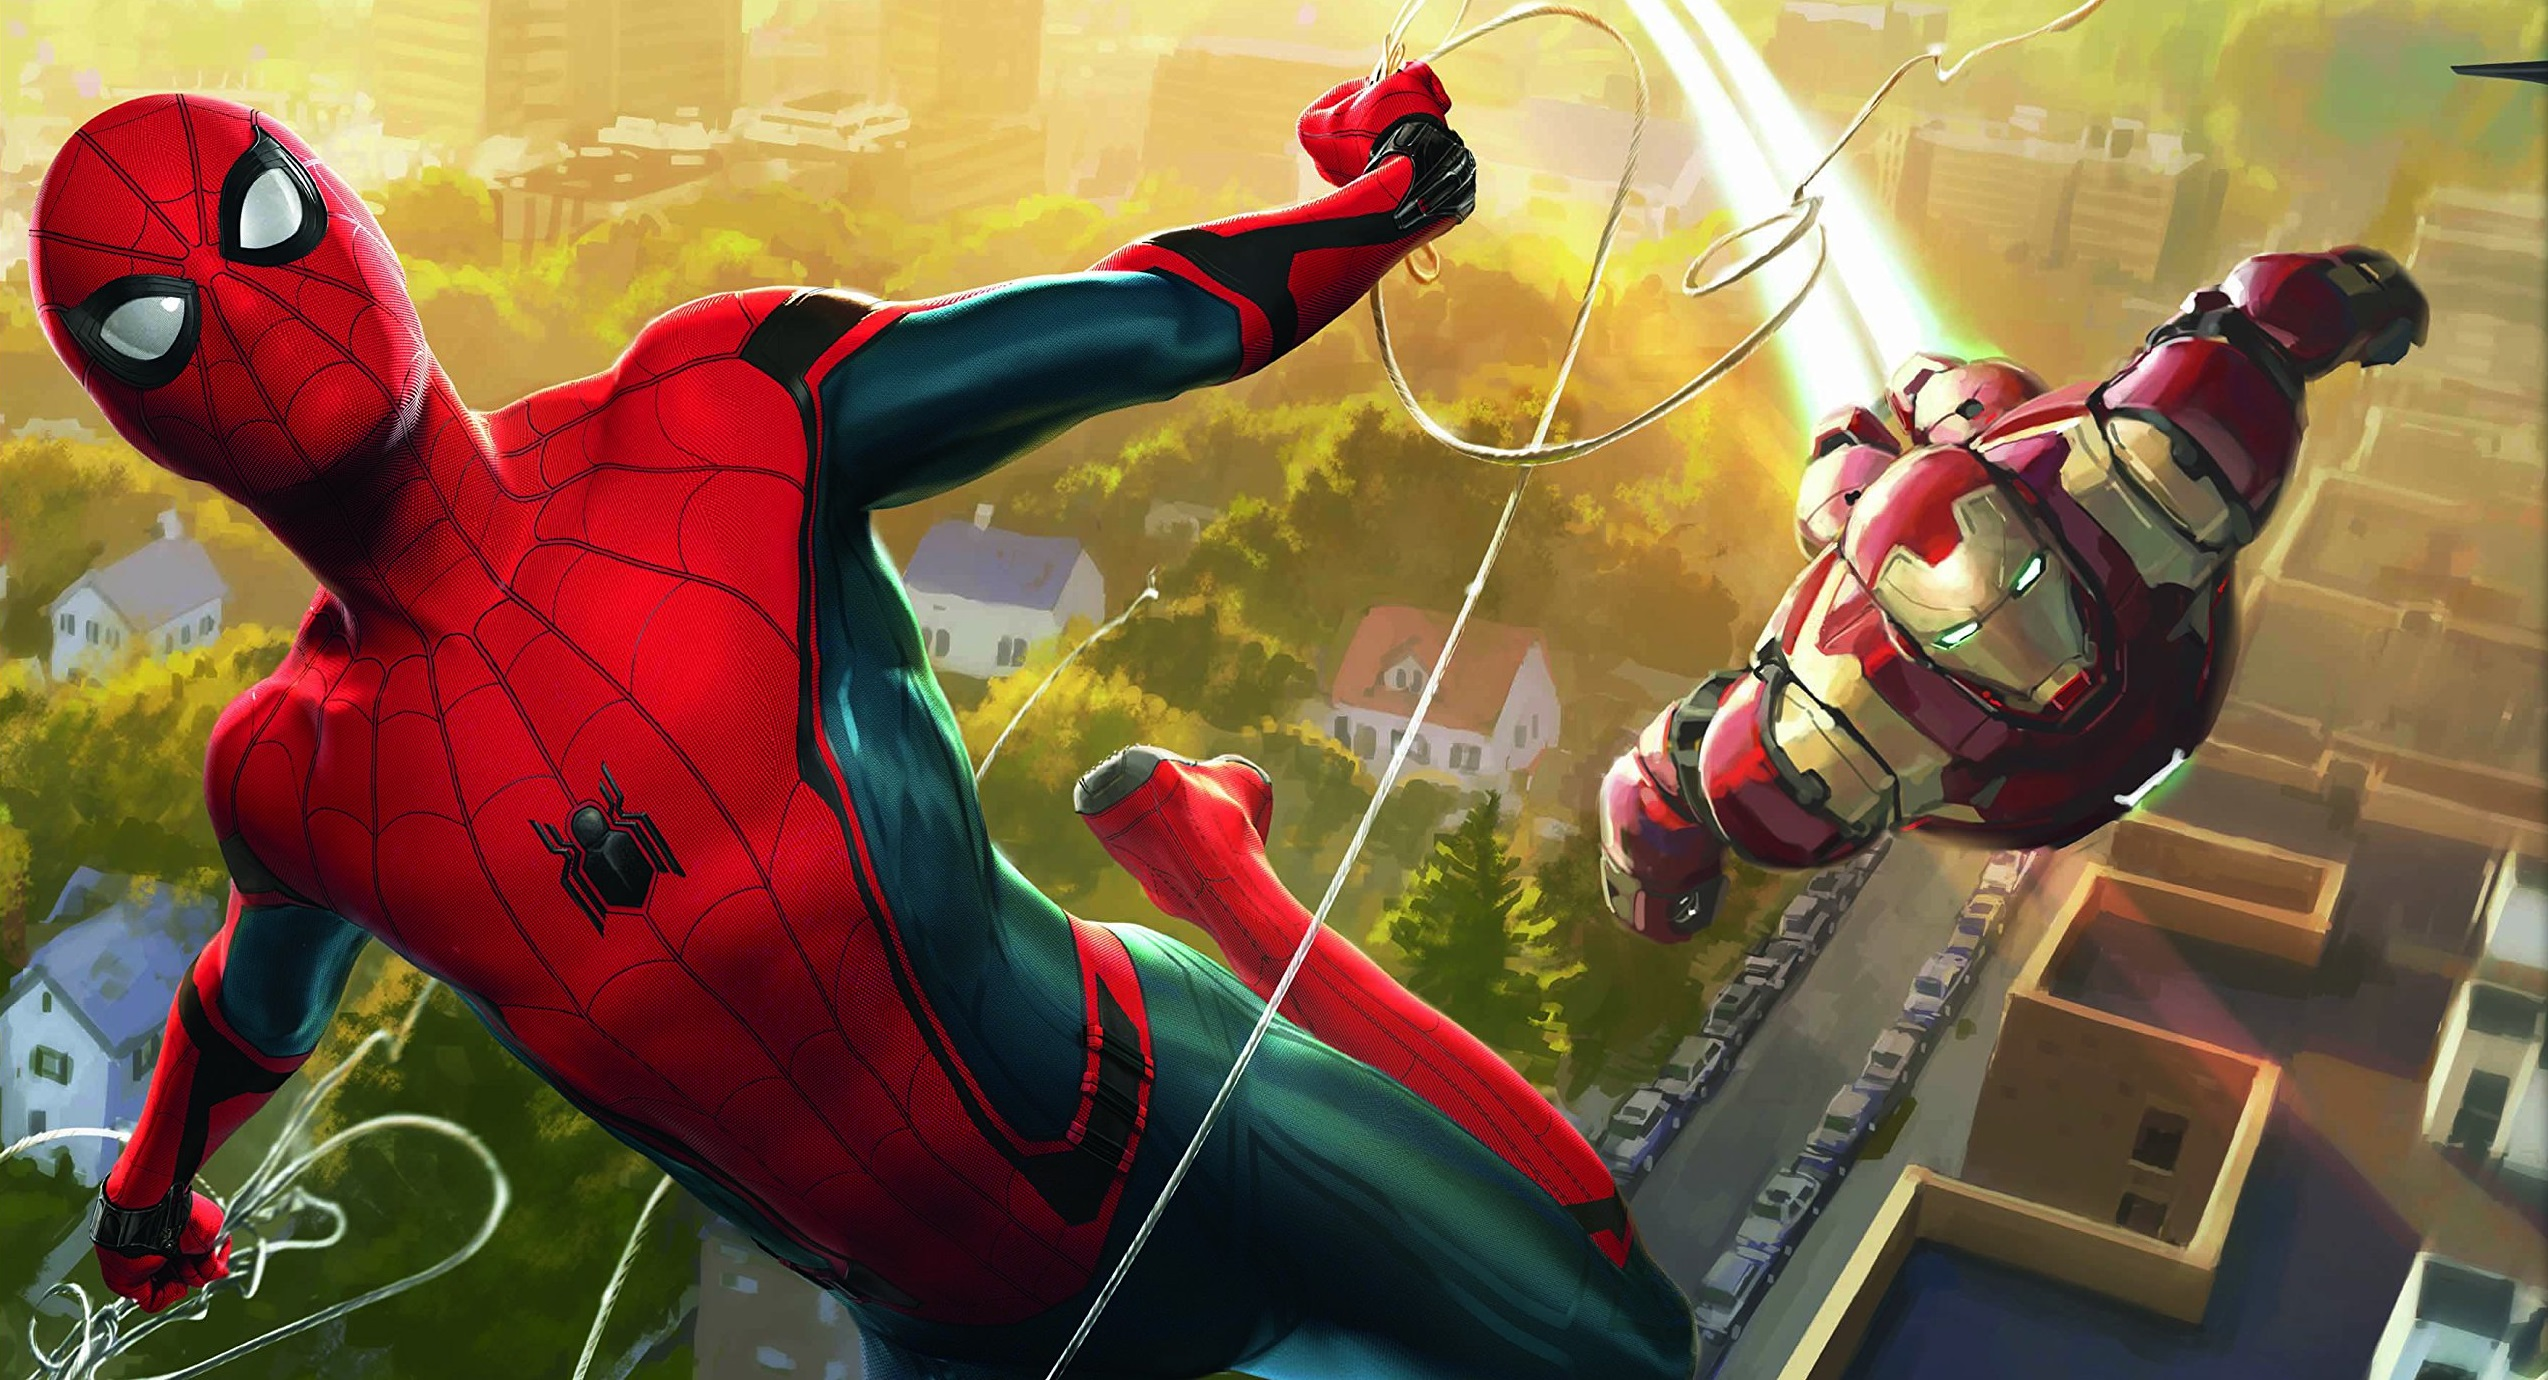 Spiderman And Iron Man Artwork Hd Movies 4k Wallpapers Images